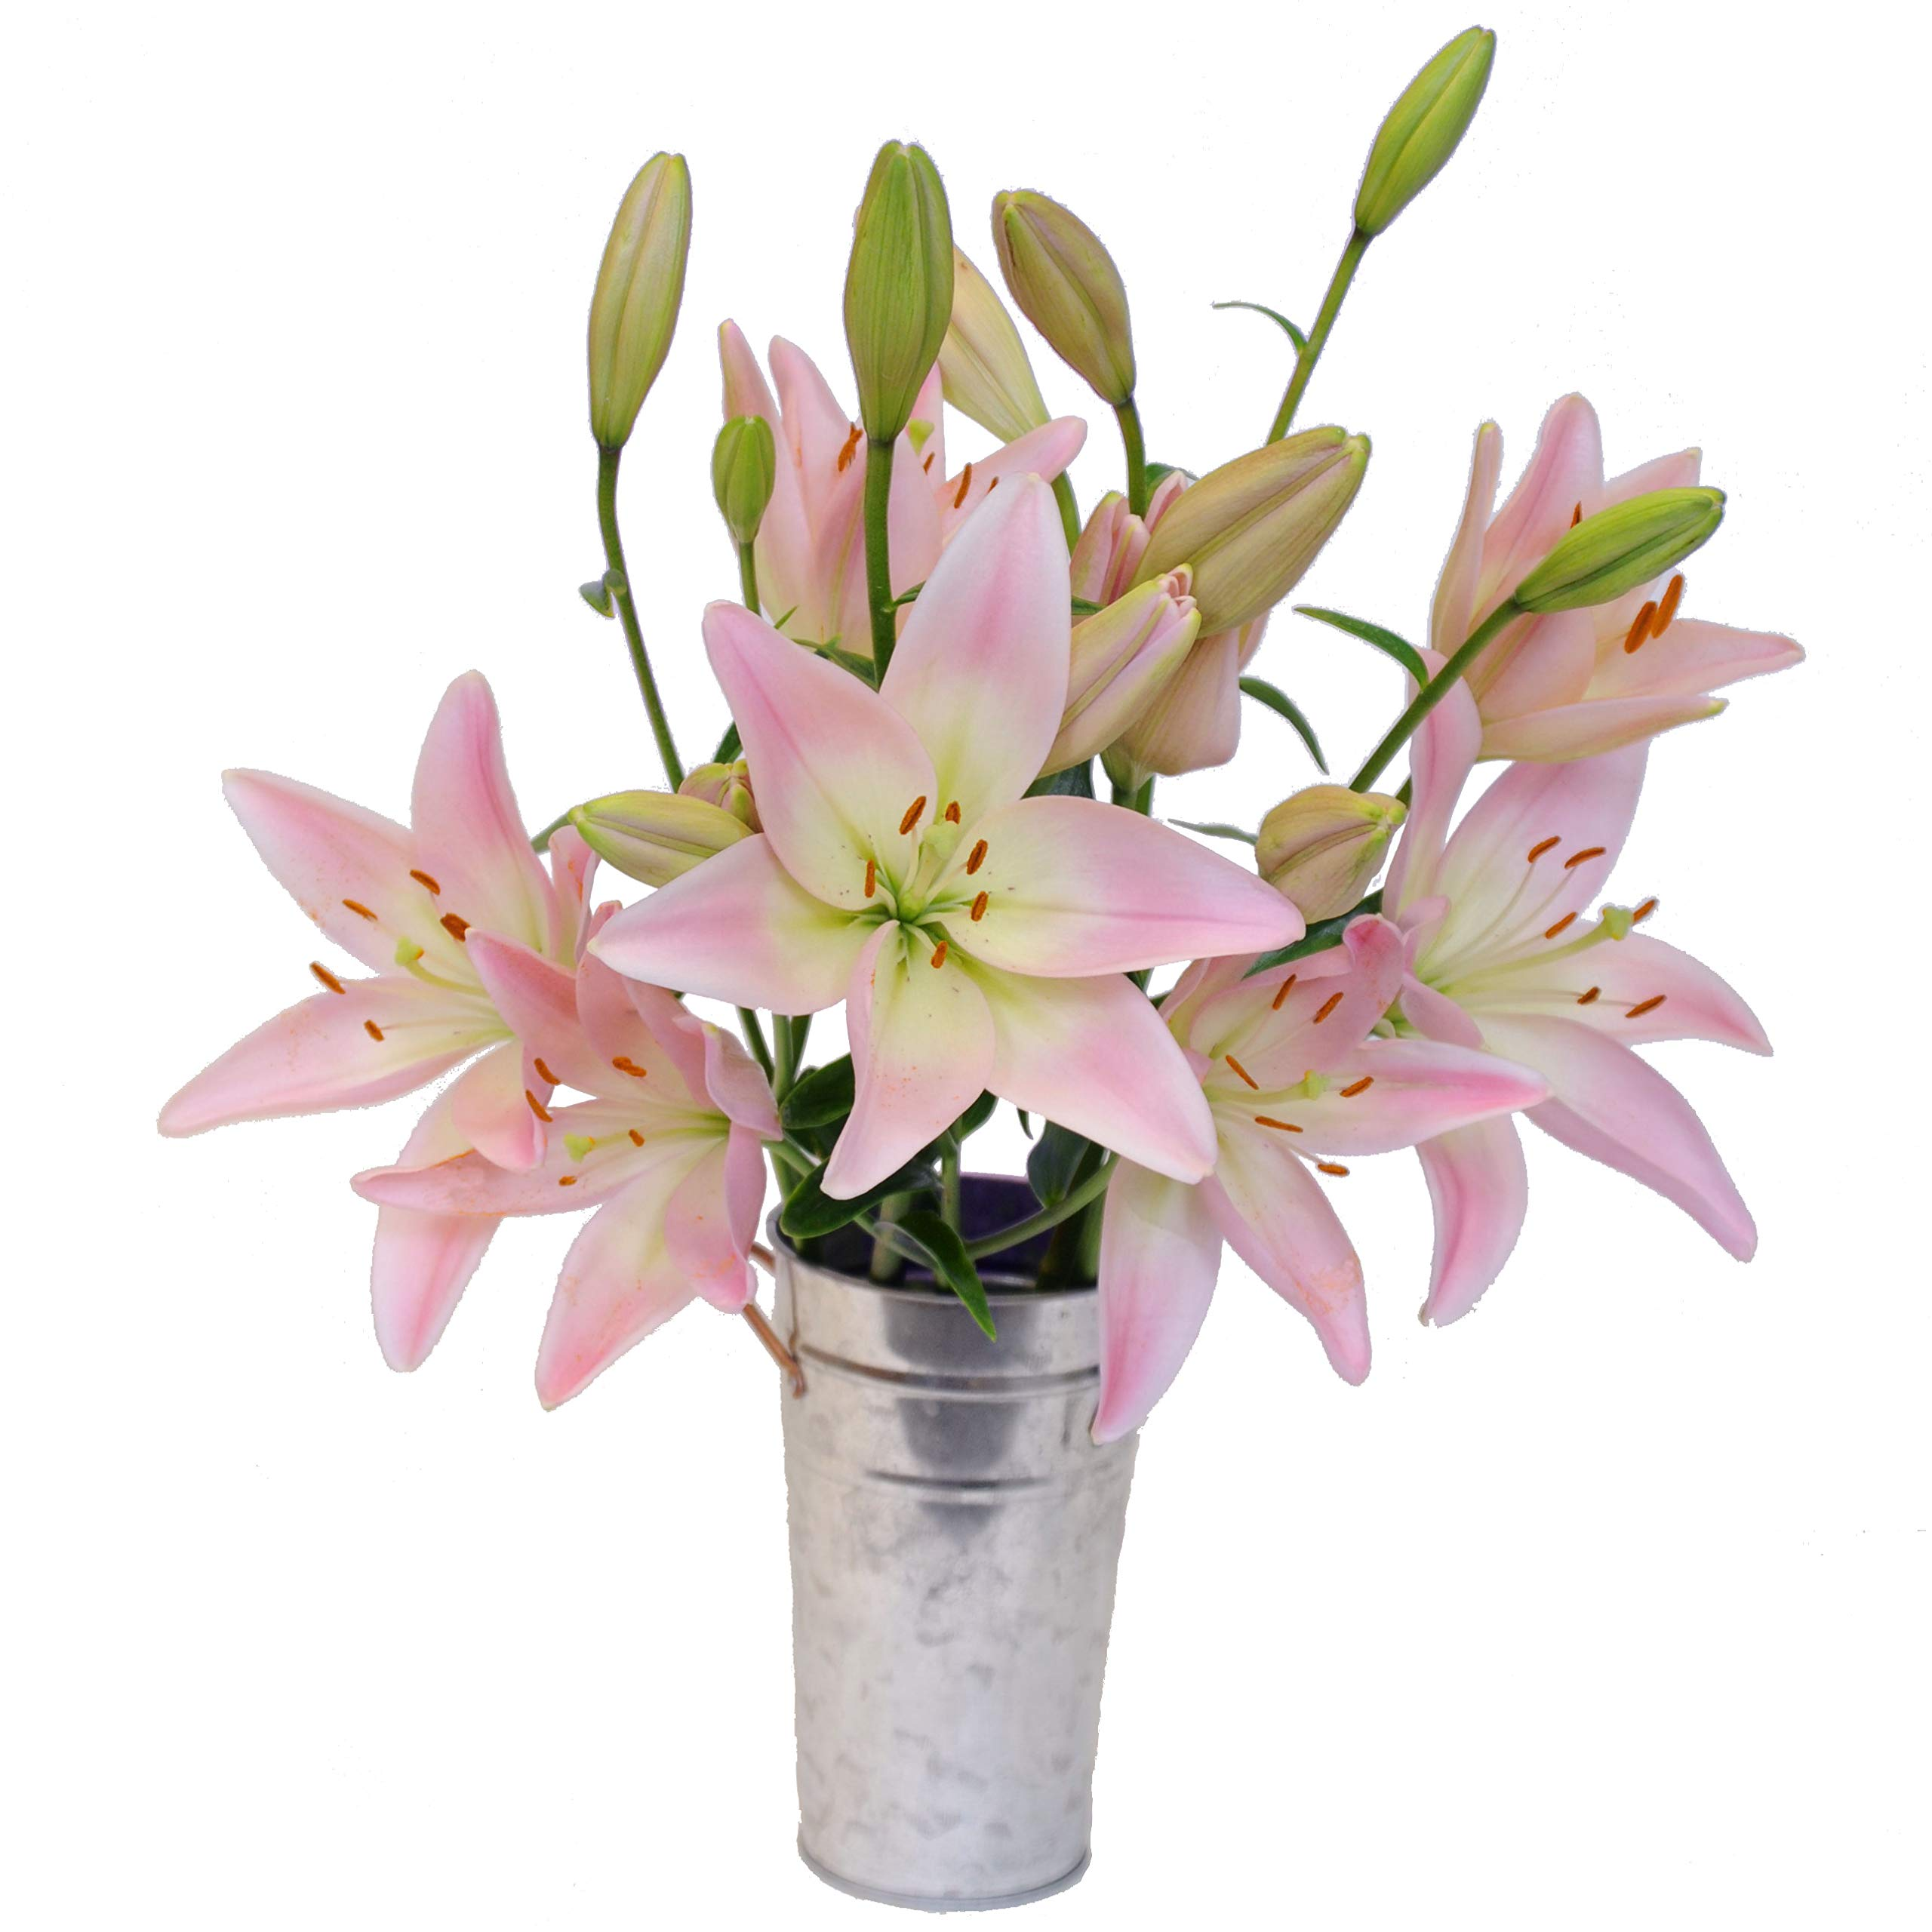 Stargazer Barn Blushing Bouquet Light Pink Royal Lilies with Vase